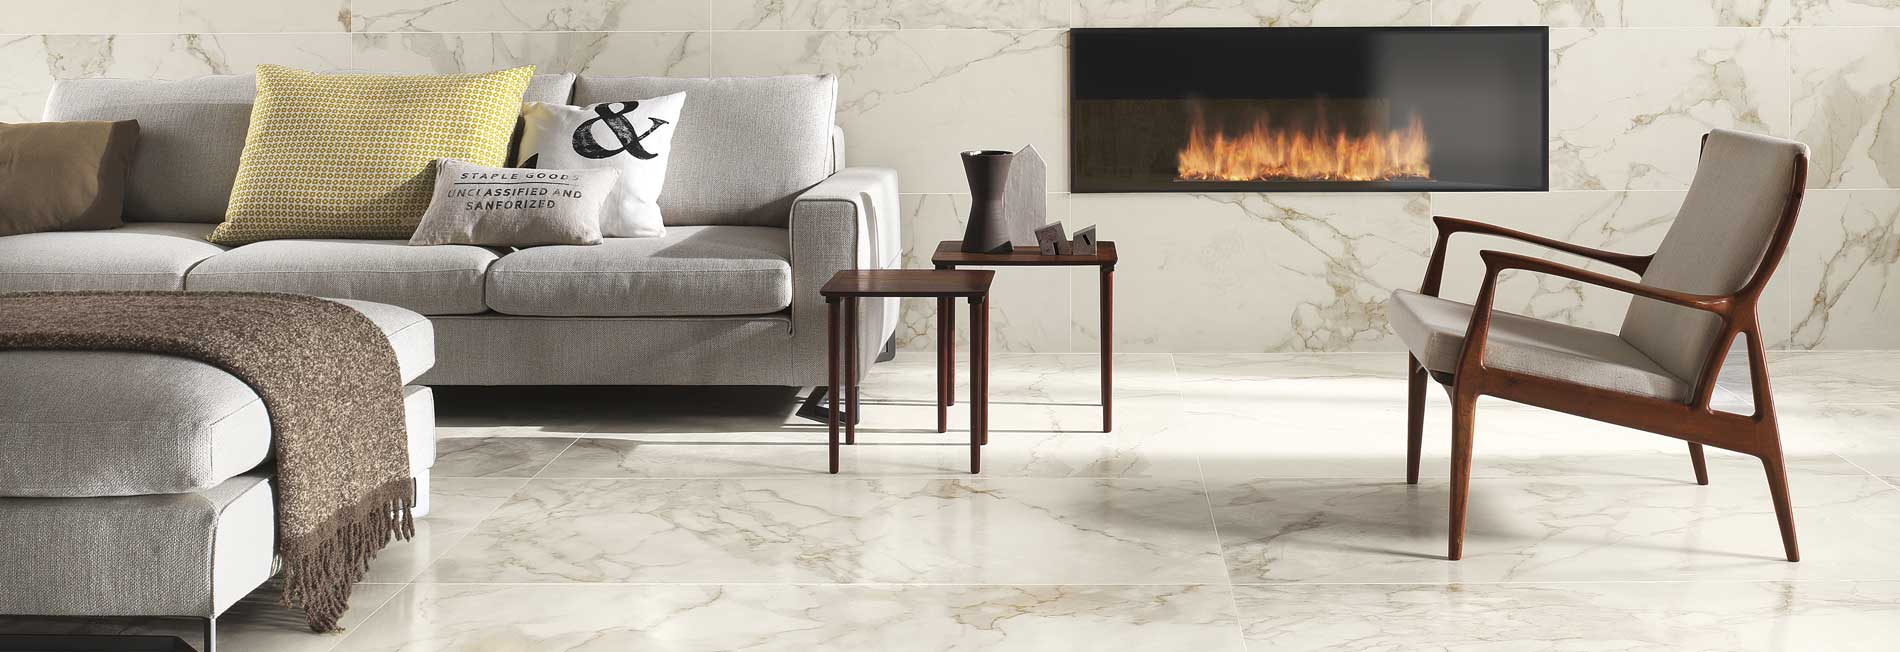 Indian Vs Italian Marble- Which One Suits Better To Your Home Interior